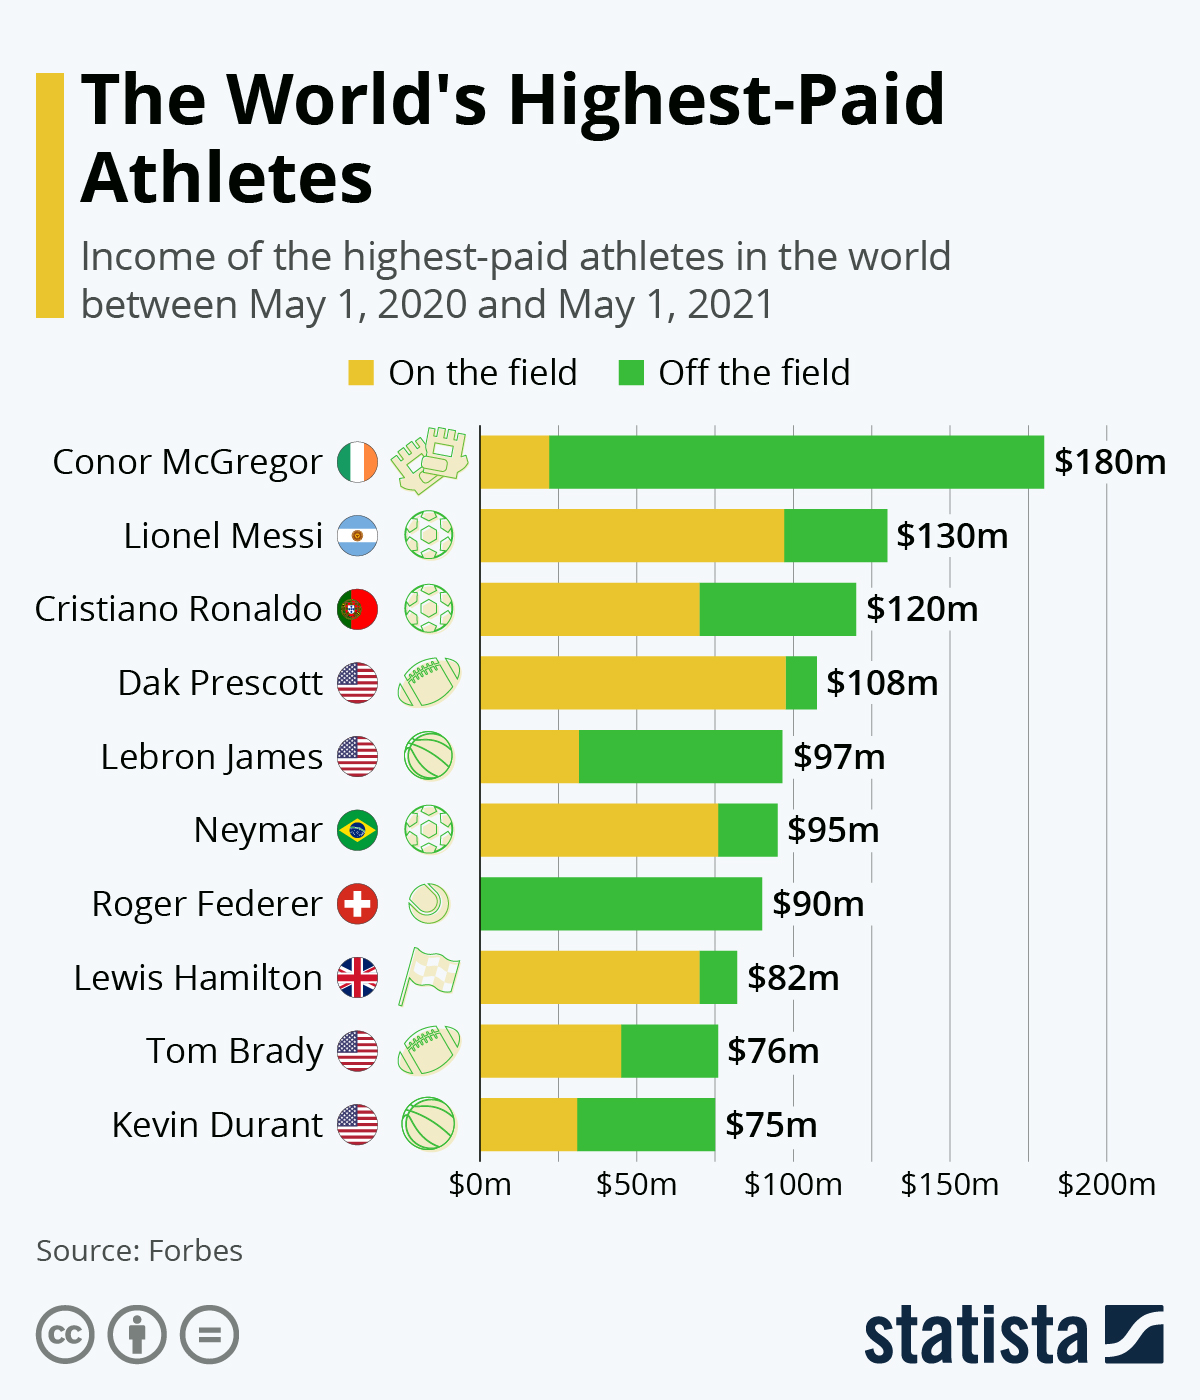 These Are The World's Highest-Paid Athletes